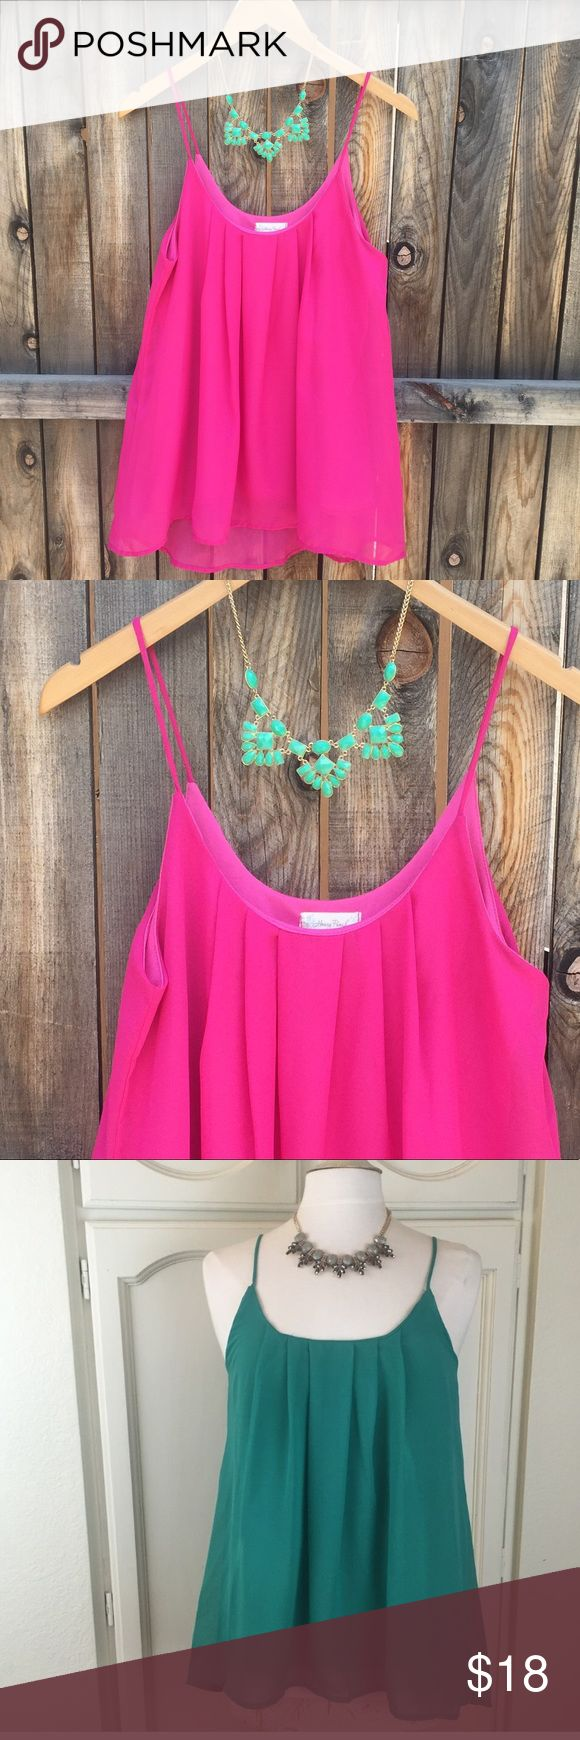 Hot Pink Chiffon Tank Perfect for summer in this bright pink and breathable material. Have other colors for sale too. This top is NWOT Honey Punch Tops Tank Tops